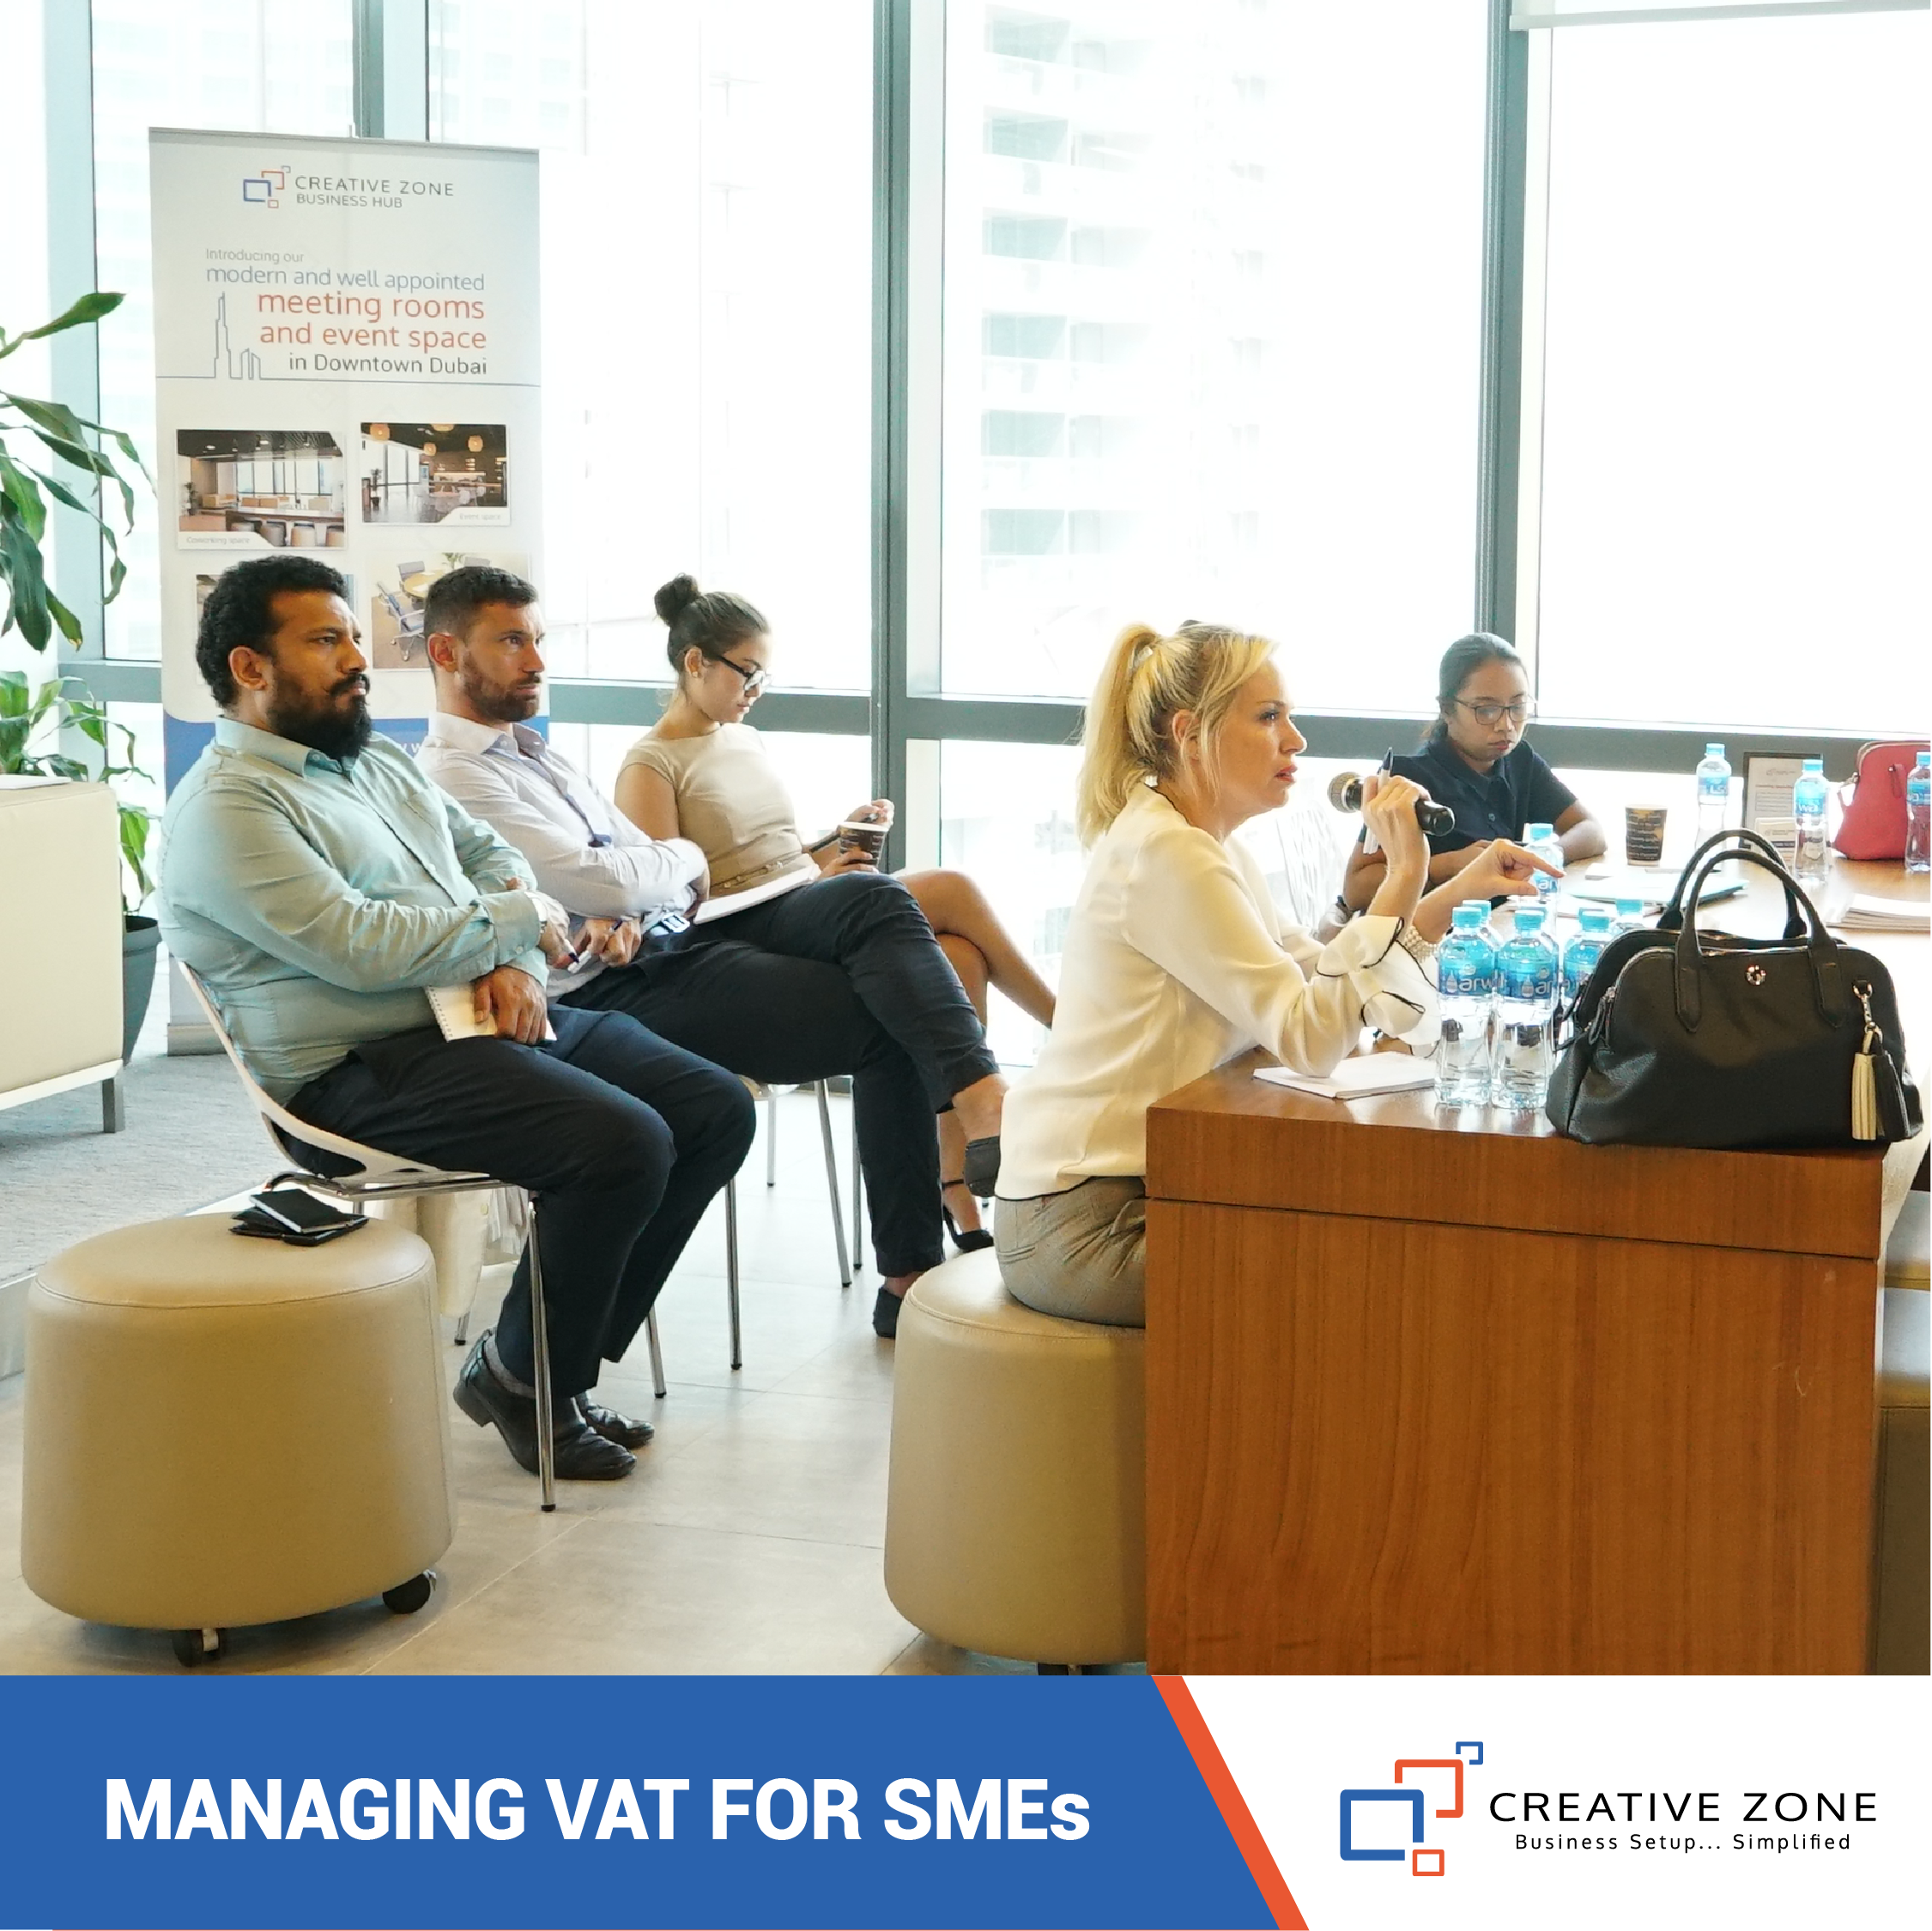 Business Intelligence Workshop on Managing VAT for SMEs